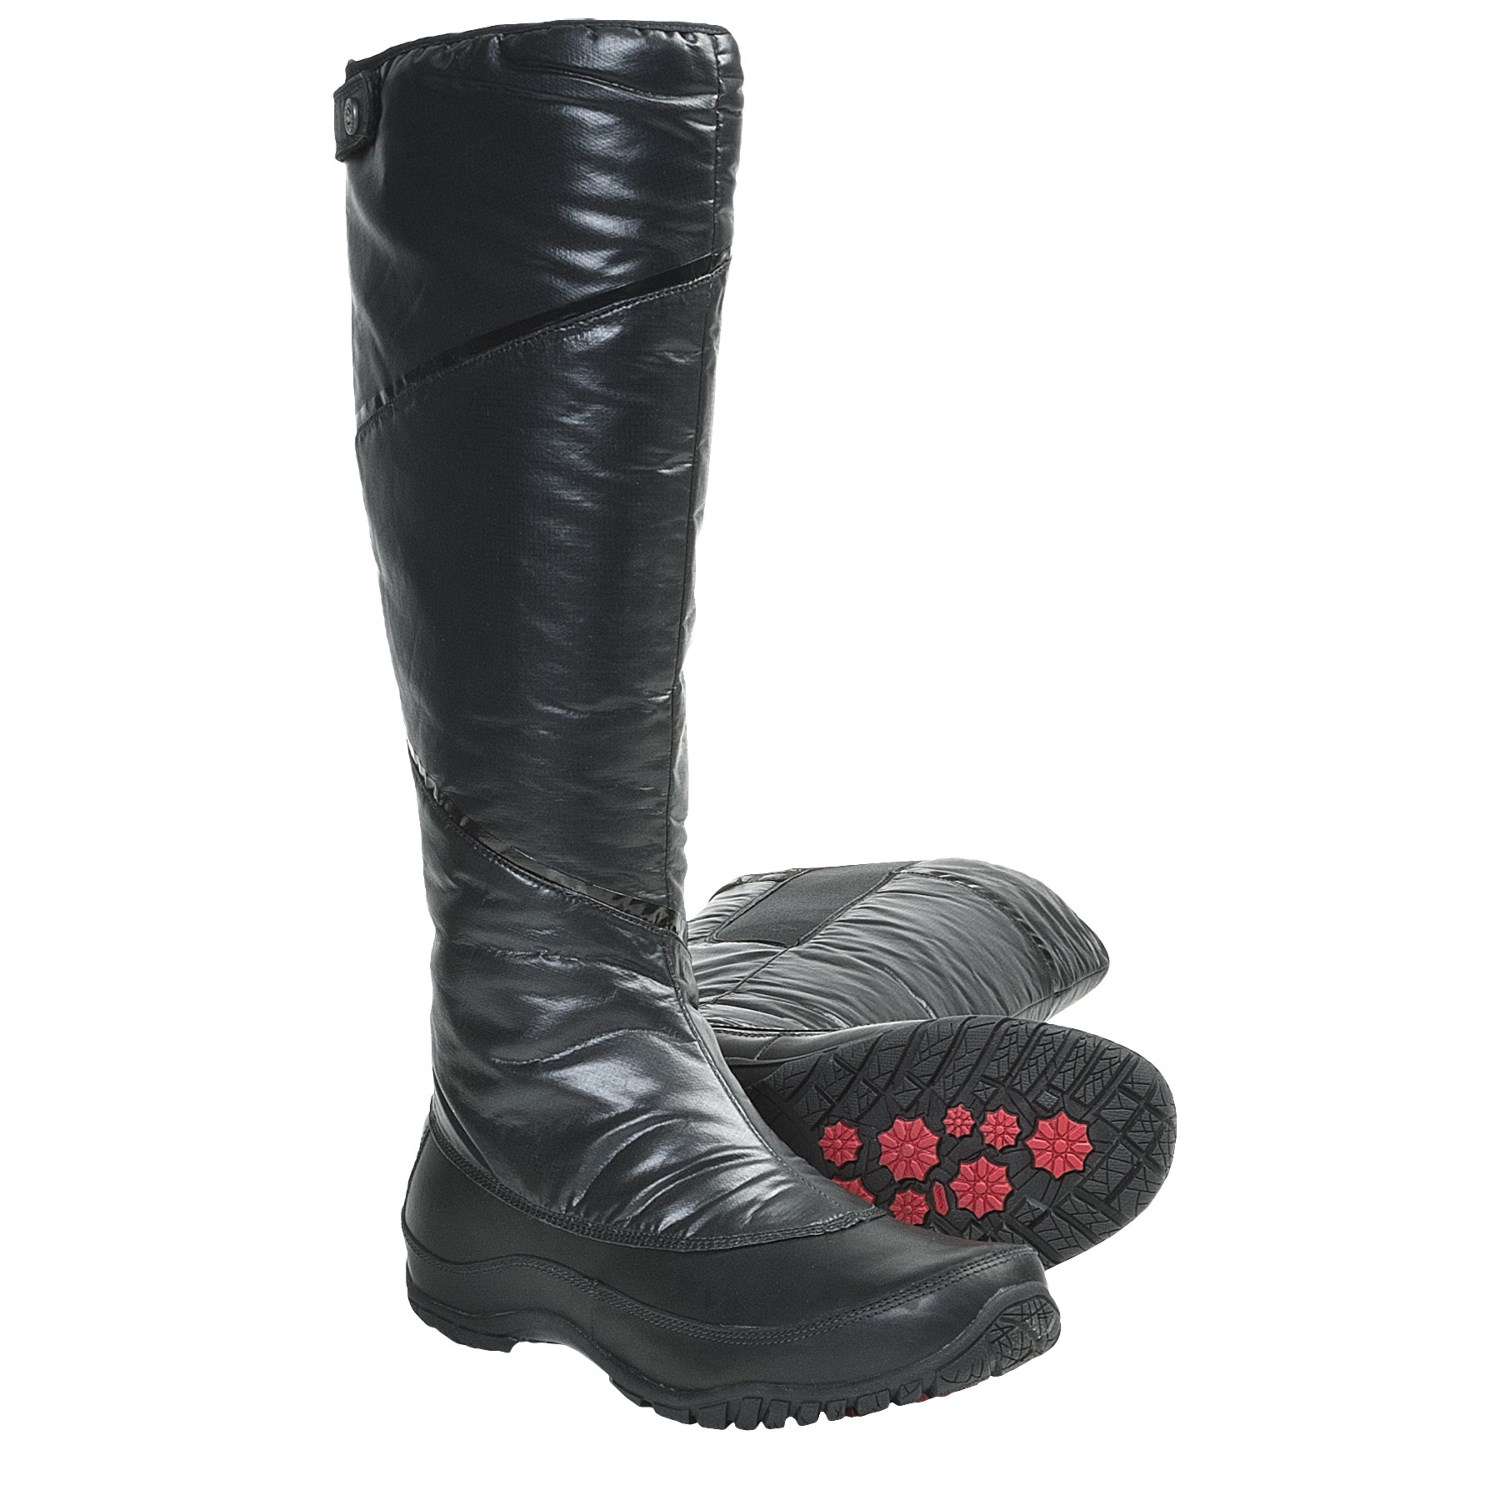 The North Face Winter Boots Clearance